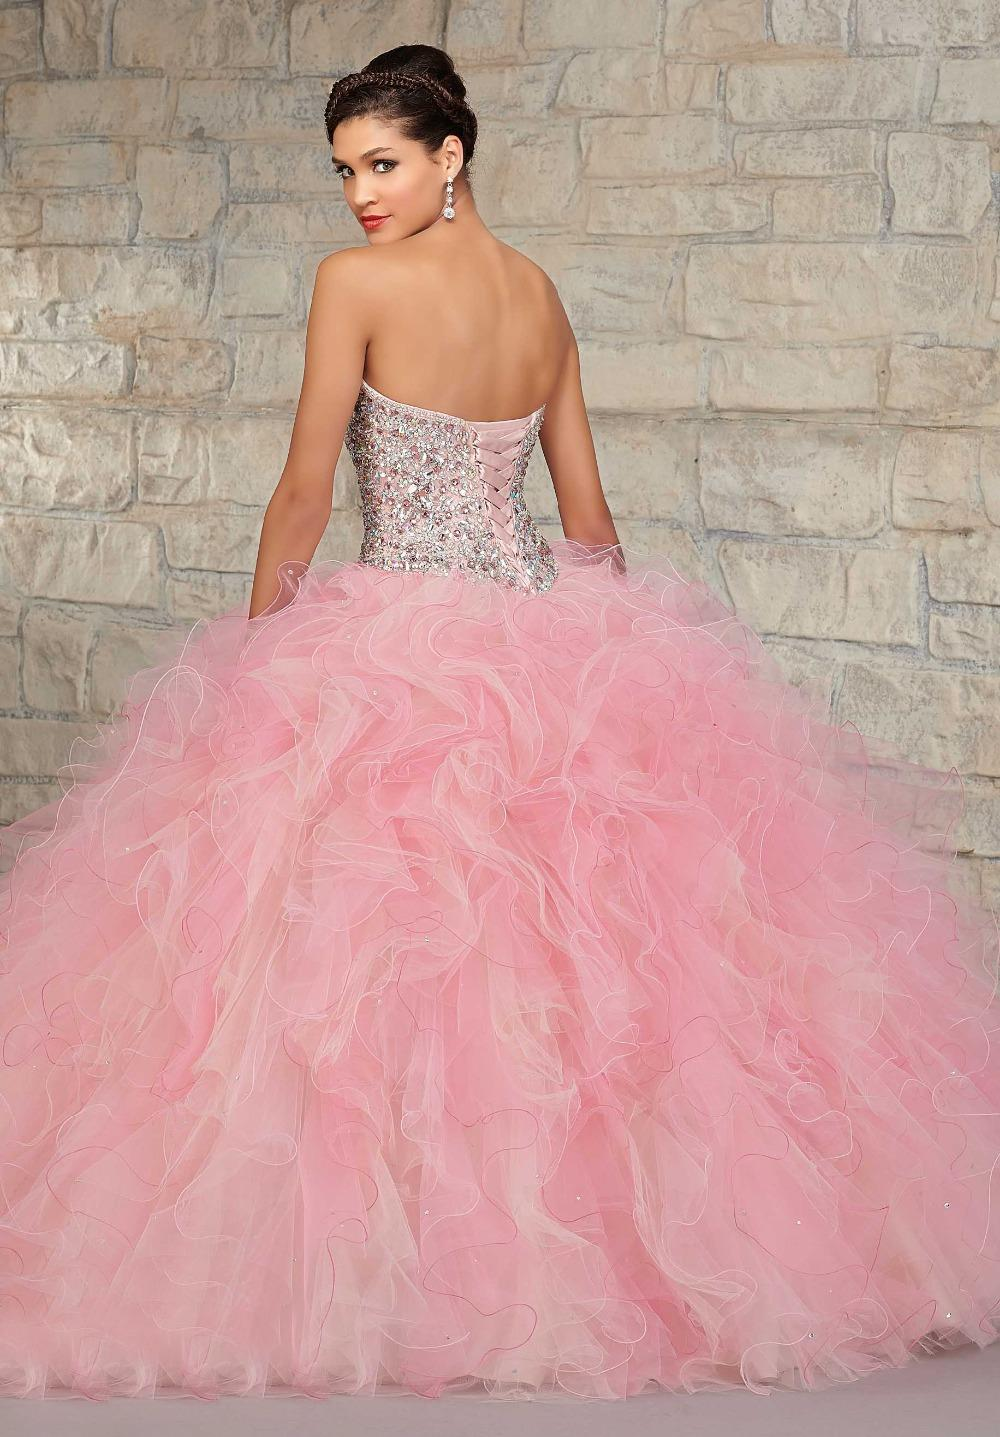 Elegant Strapless Beads Crystals Organza Puffy Light Pink Quinceanera  Dresses-in Quinceanera Dresses from Weddings   Events on Aliexpress.com  93c56a5cb1f3